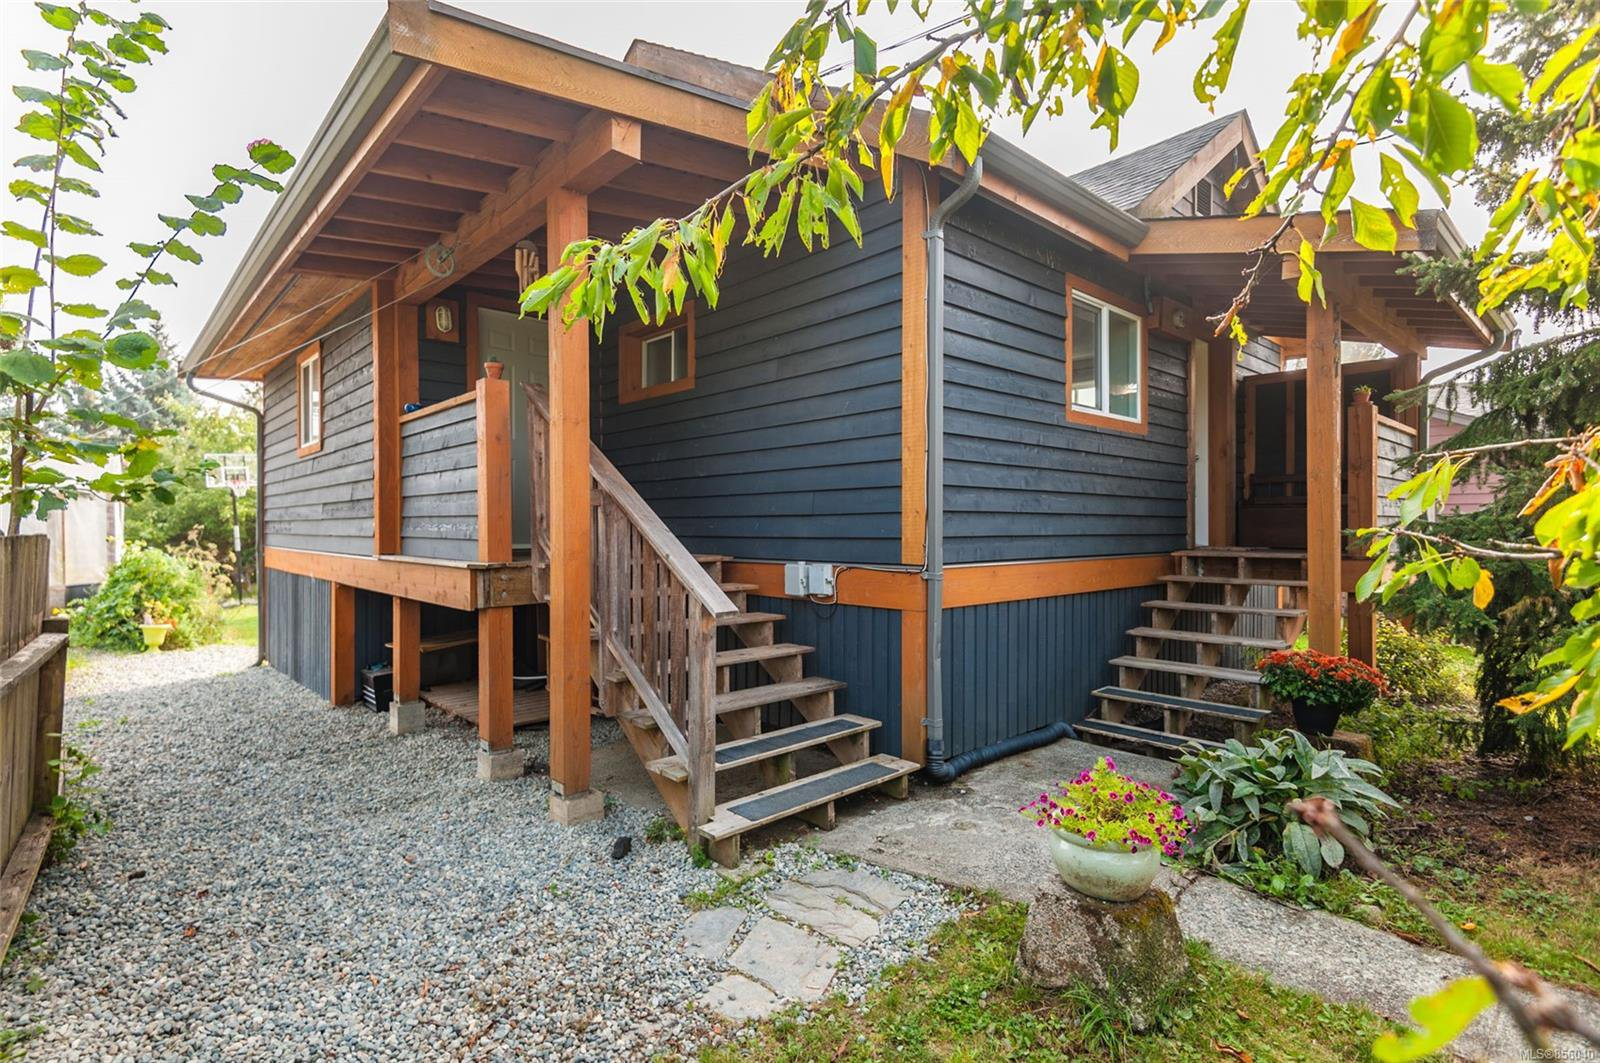 Main Photo: 547 7th St in : Na South Nanaimo House for sale (Nanaimo)  : MLS®# 856040